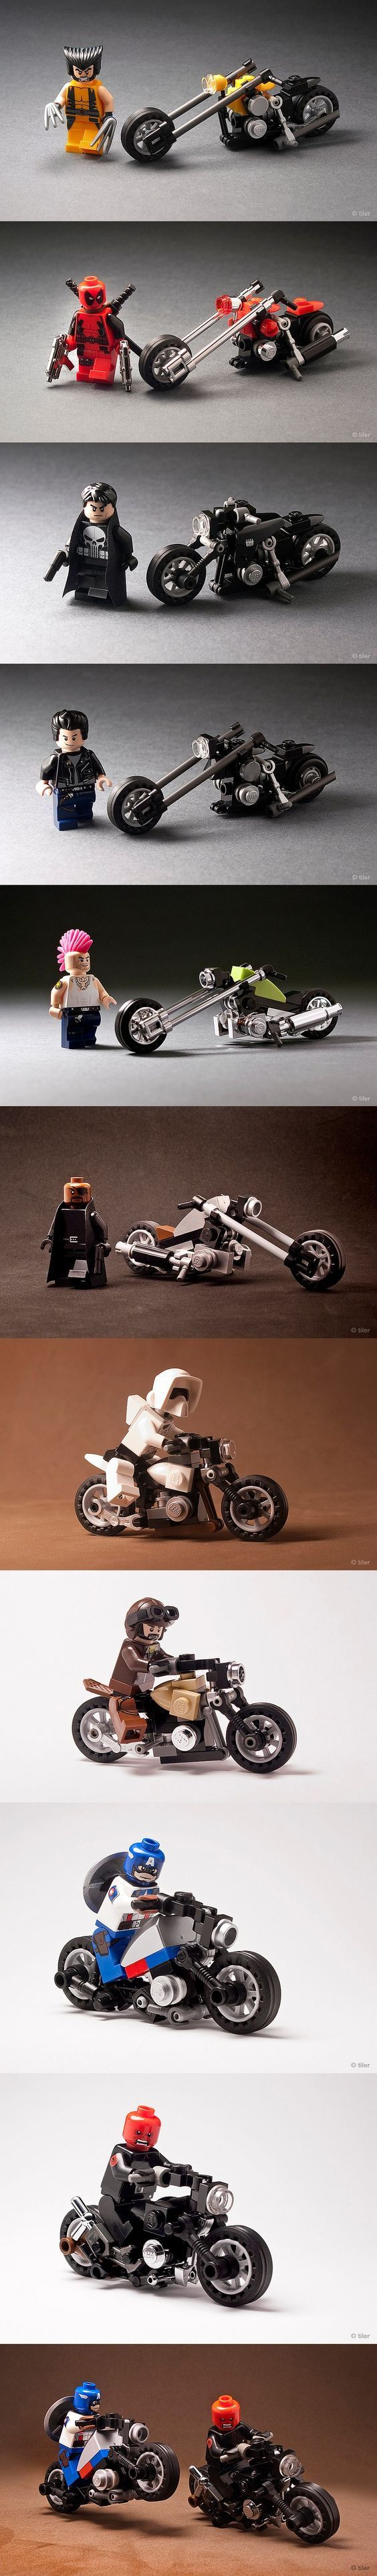 AMAZING LEGO Bikes with wolverine, deadpool,ghost rider ....: